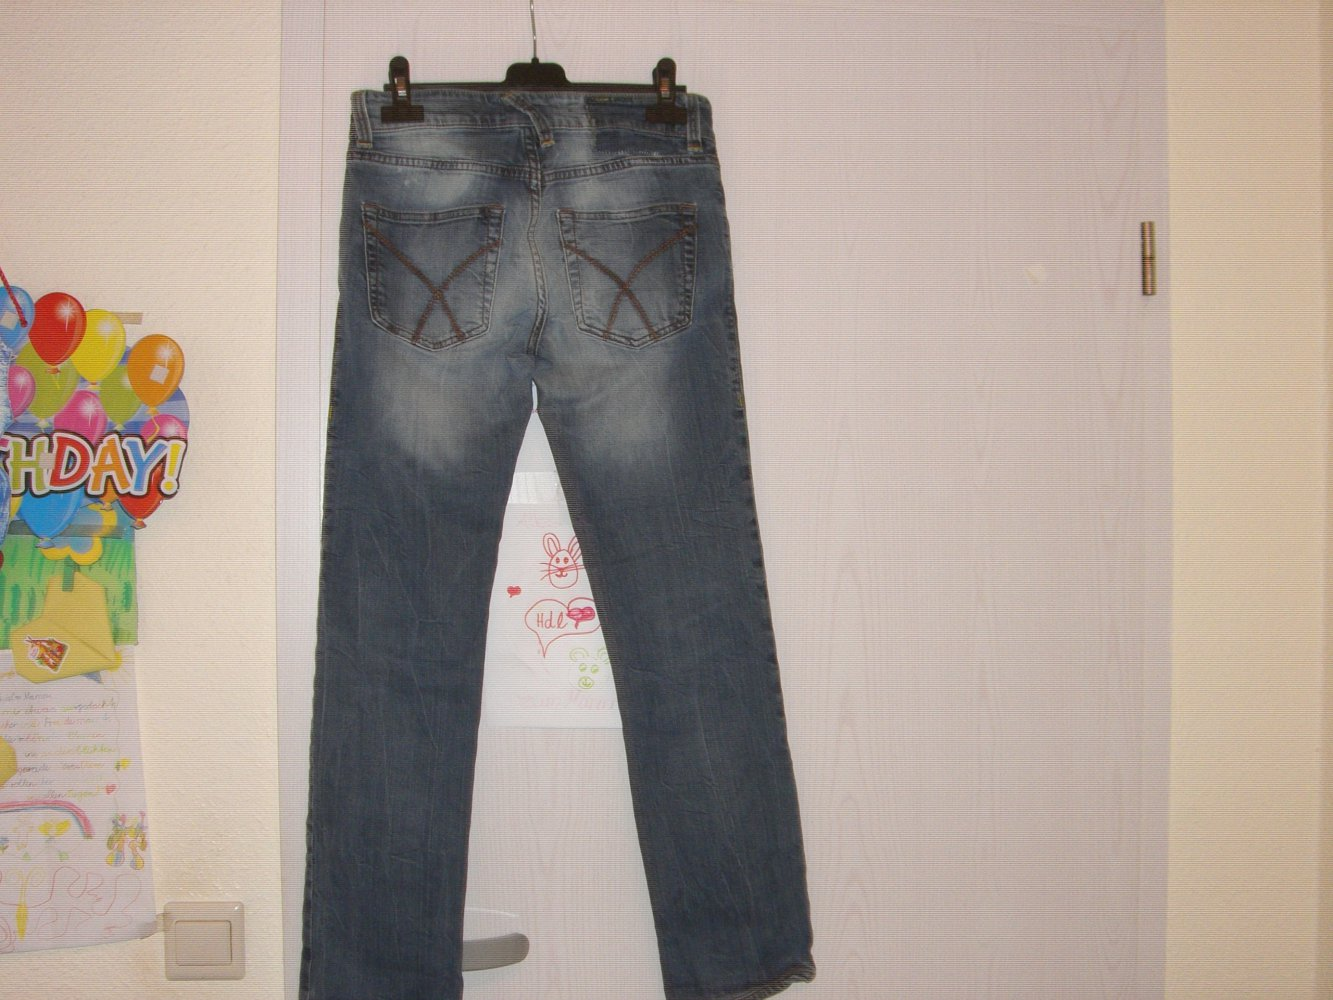 87bca668ac Campus by Marco Polo Jeans Gr. 27 34-36 XS S :: Kleiderkorb.at